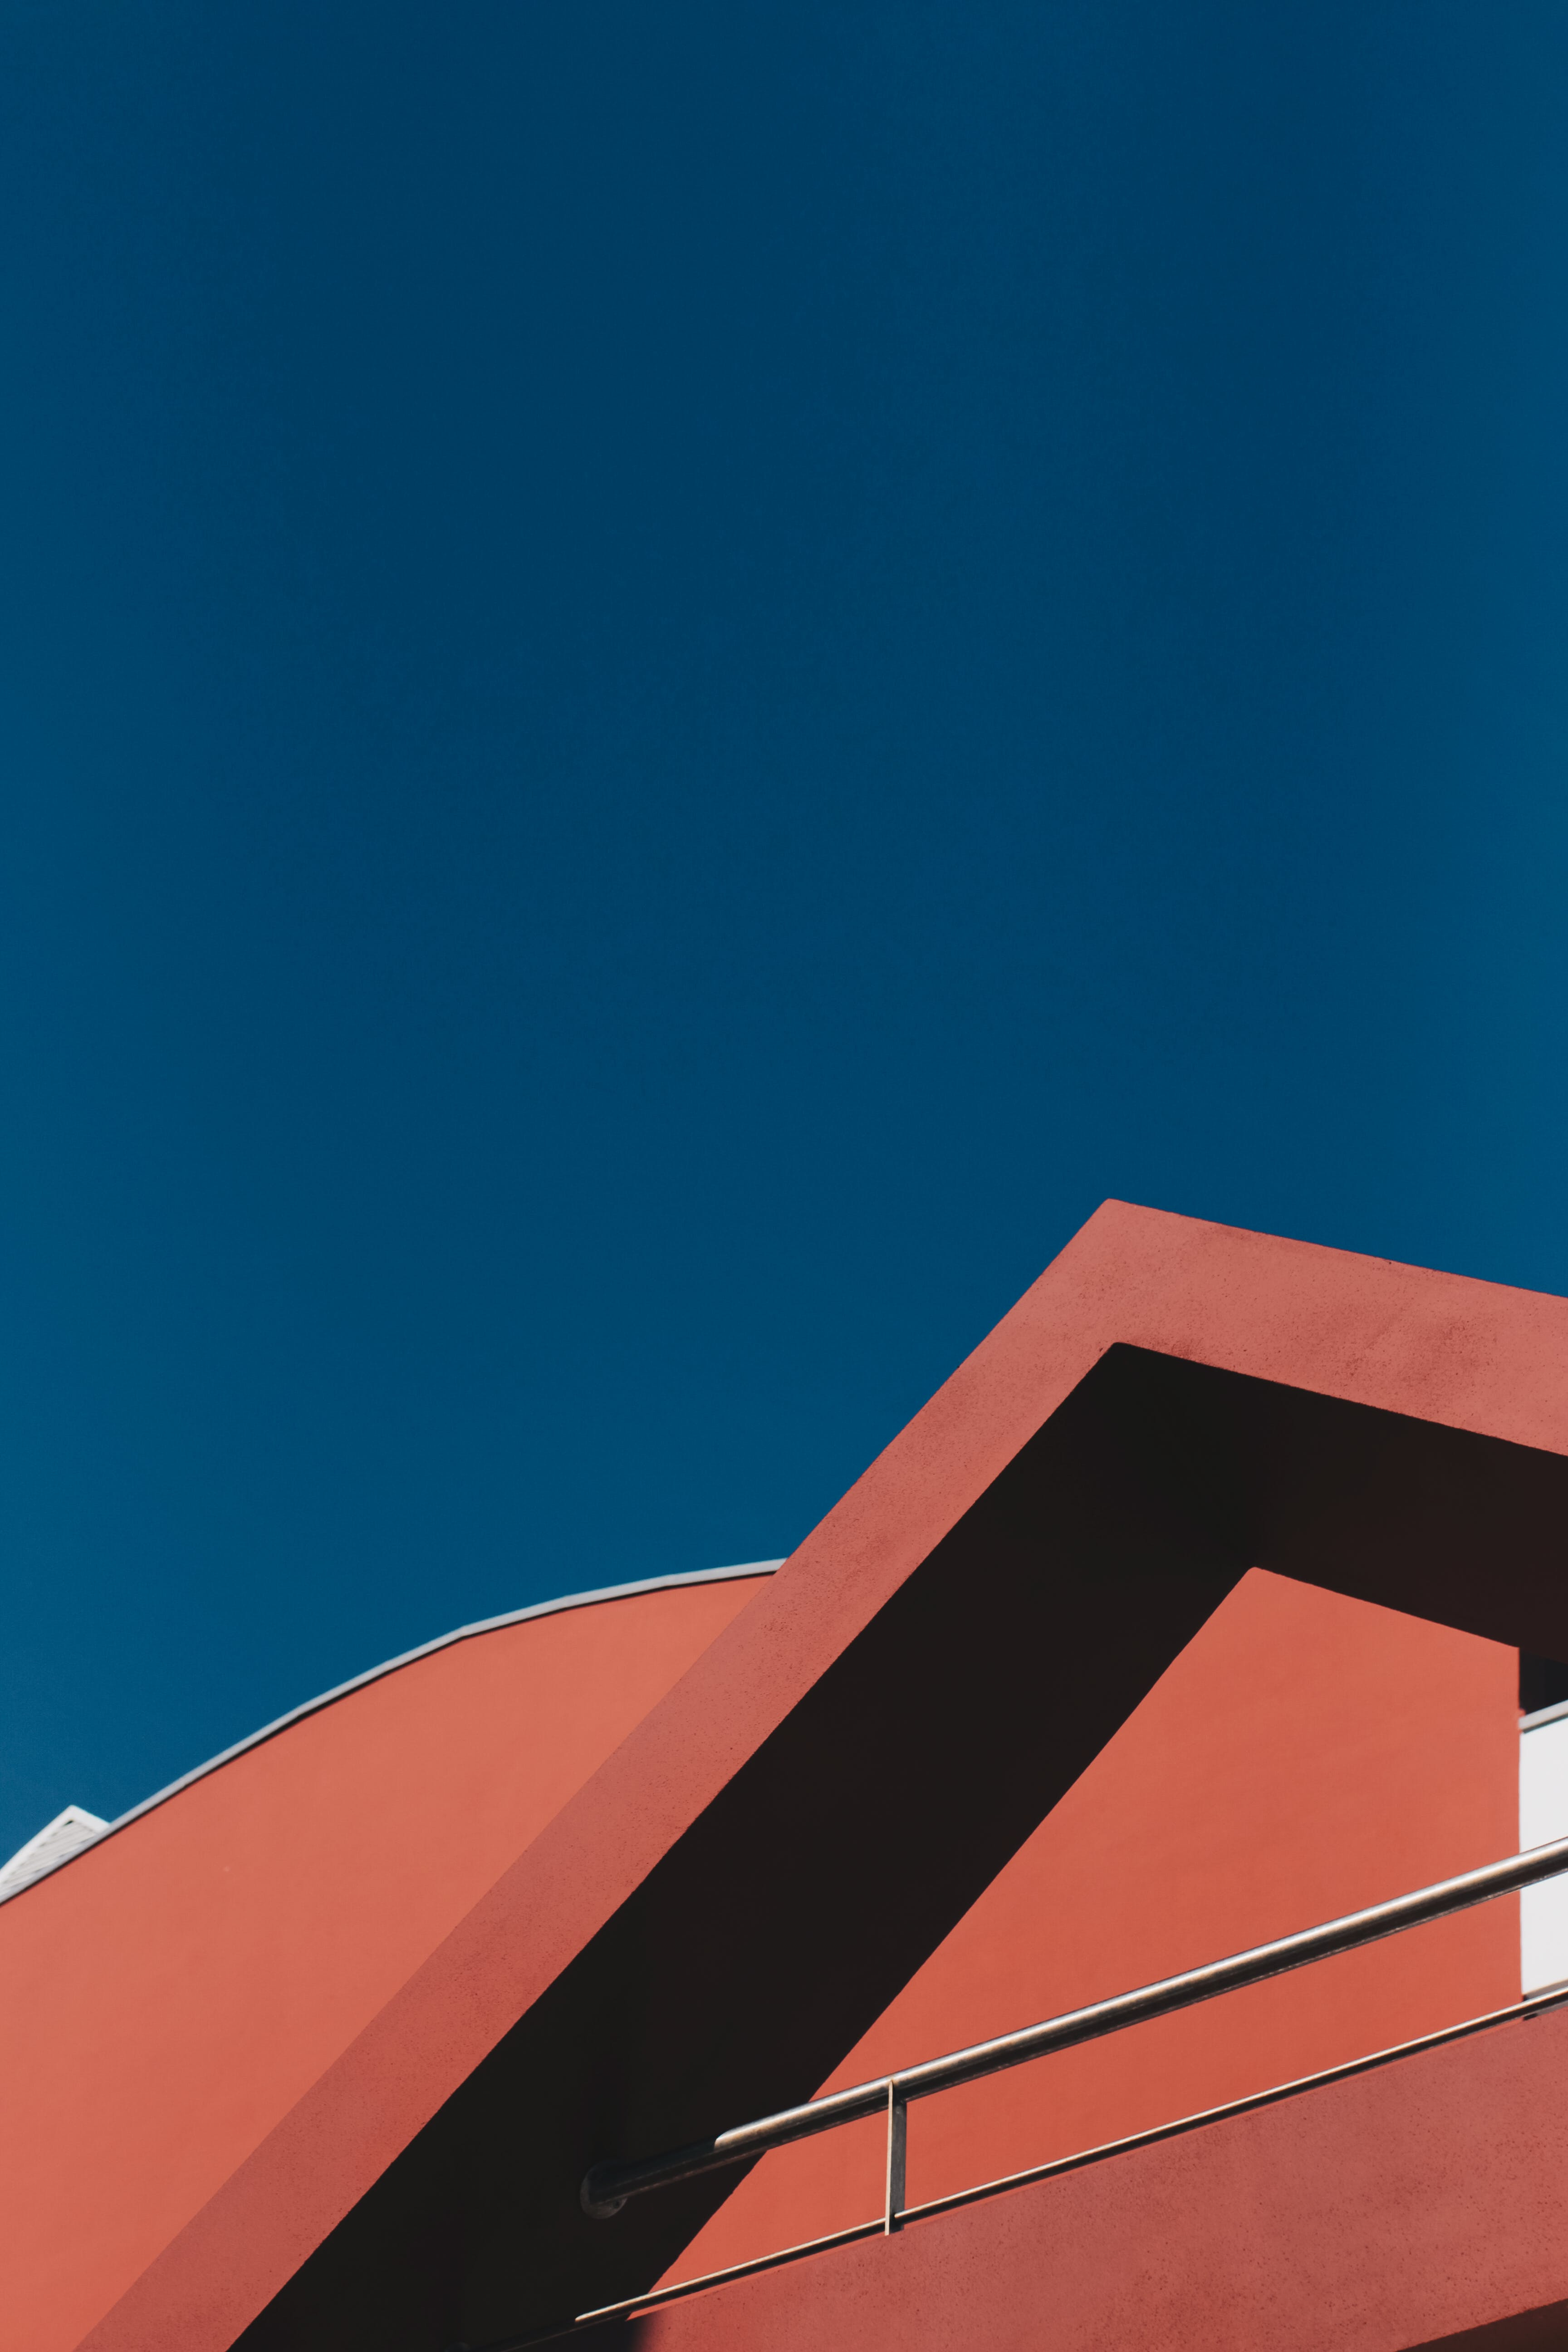 Free stock photo of sky, red, art, building